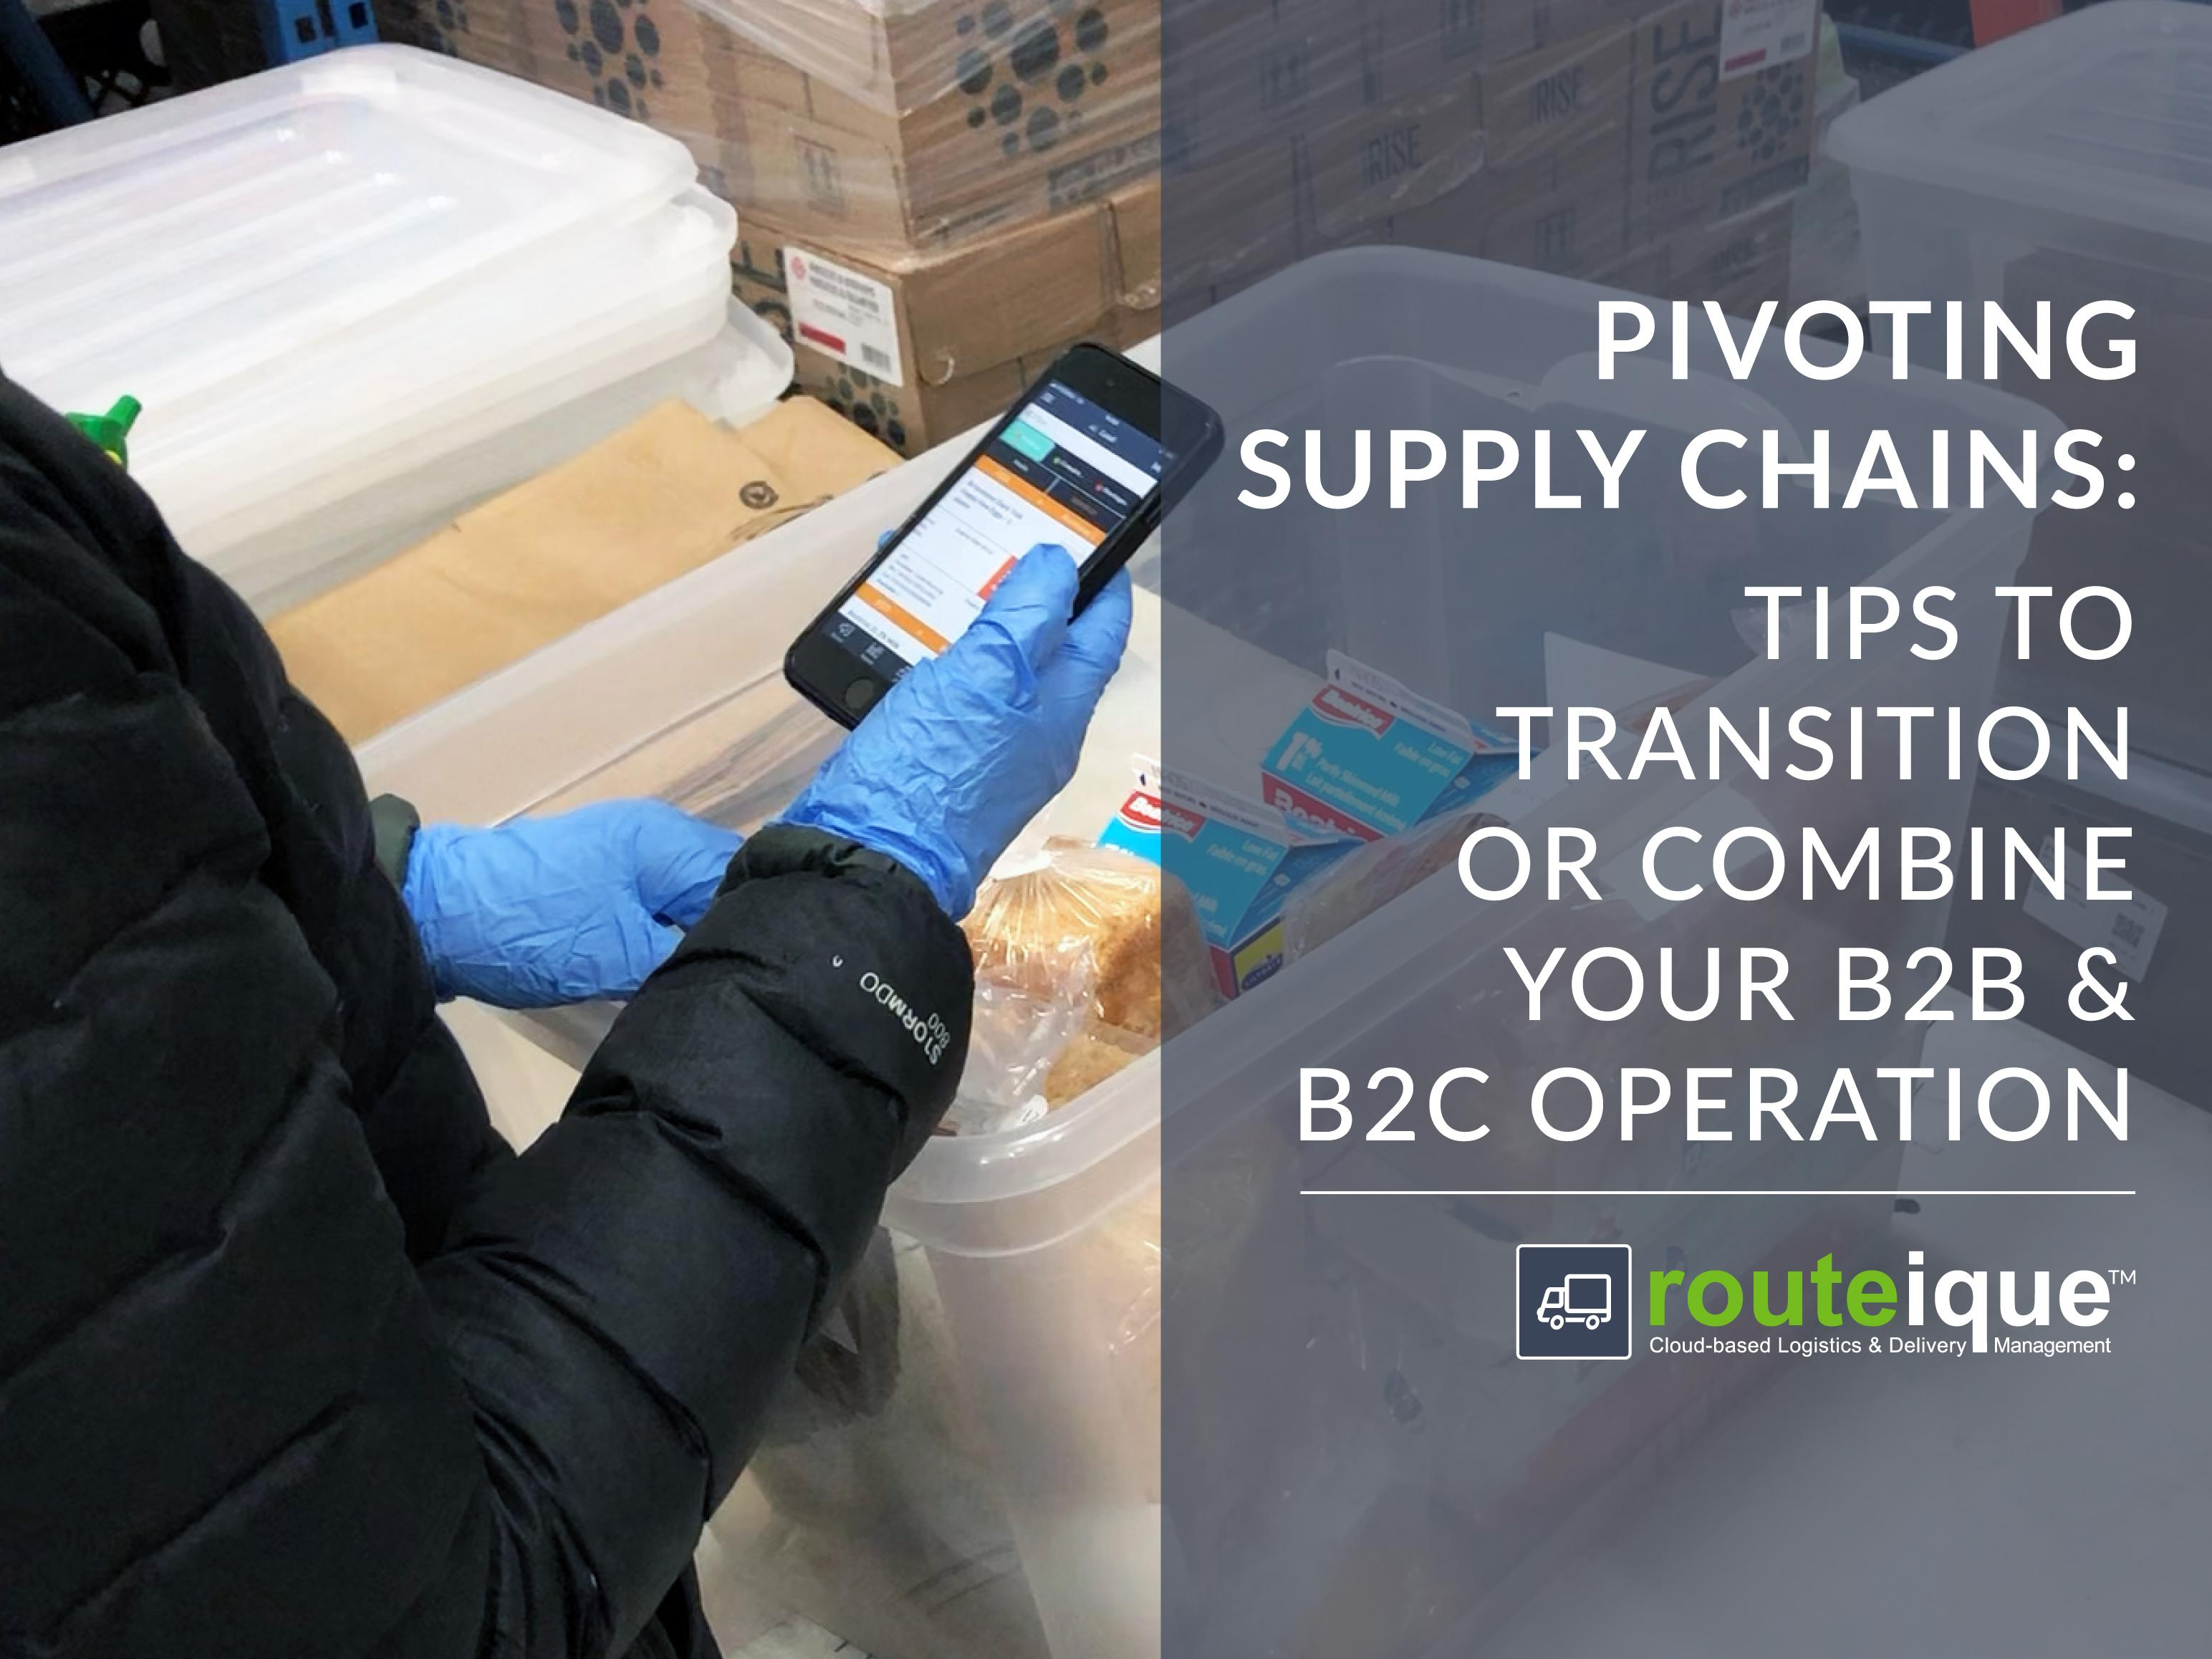 Pivoting Supply Chains from B2B to B2C